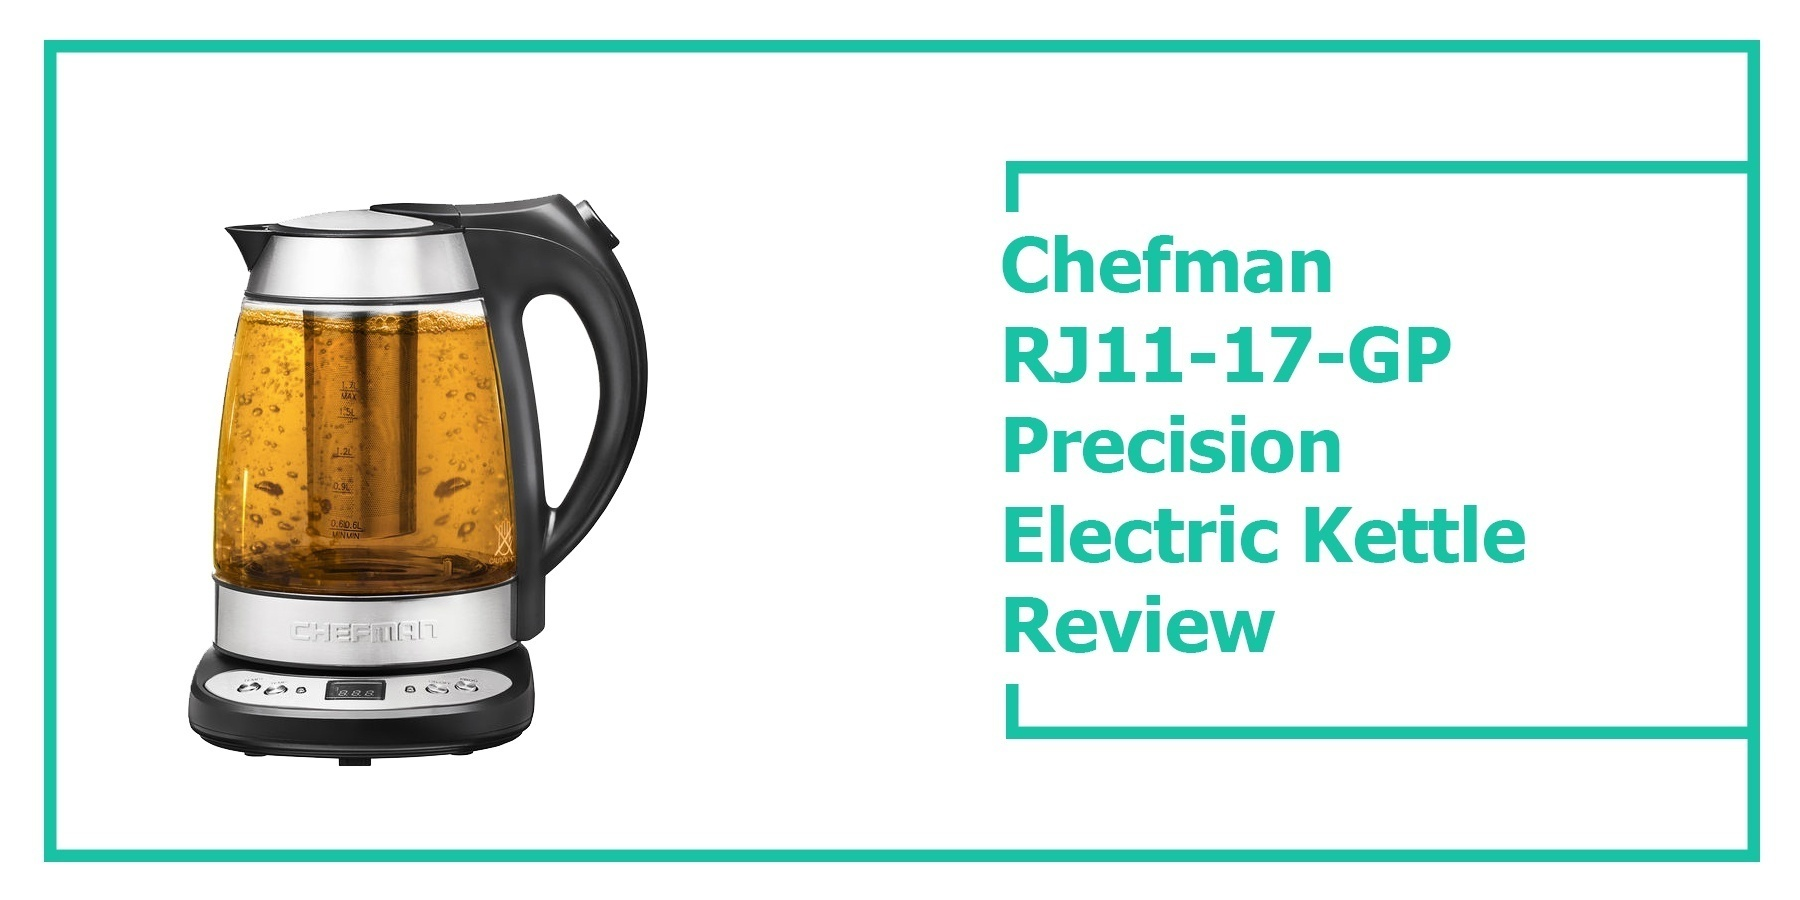 Chefman RJ11-17-GP Precision Electric Kettle Review